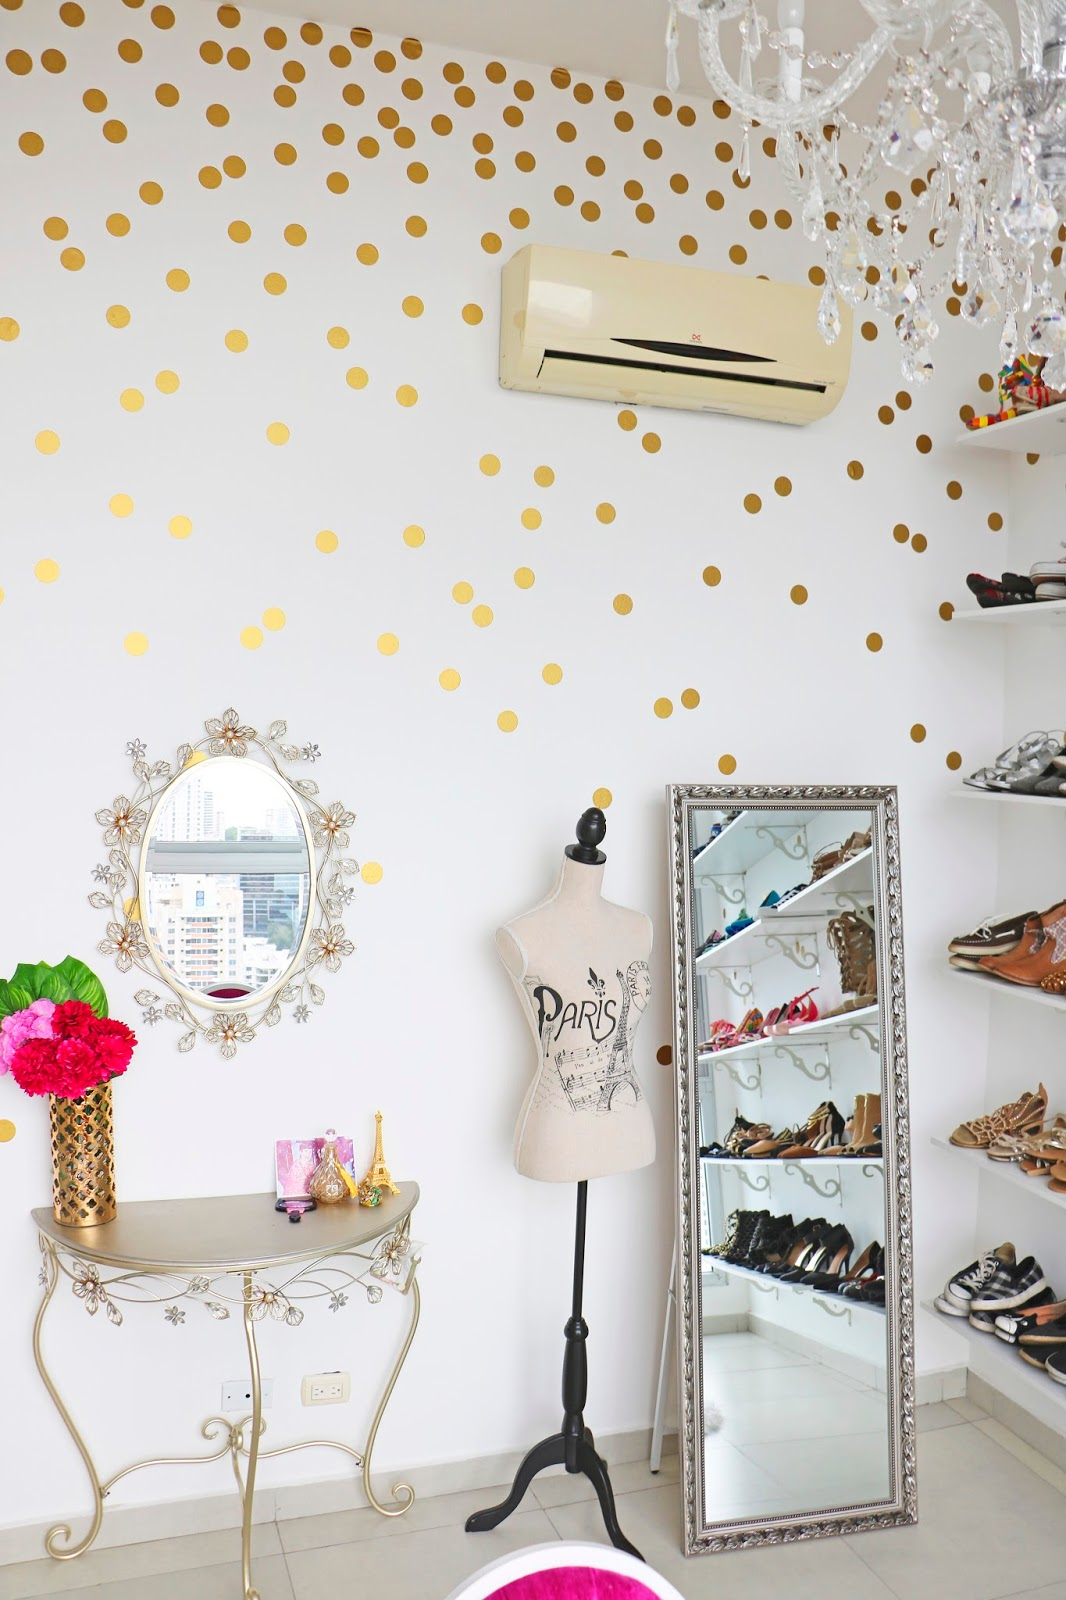 Use gold stickers to create this polka dot wall effect. Click through for more chic home decor ideas!